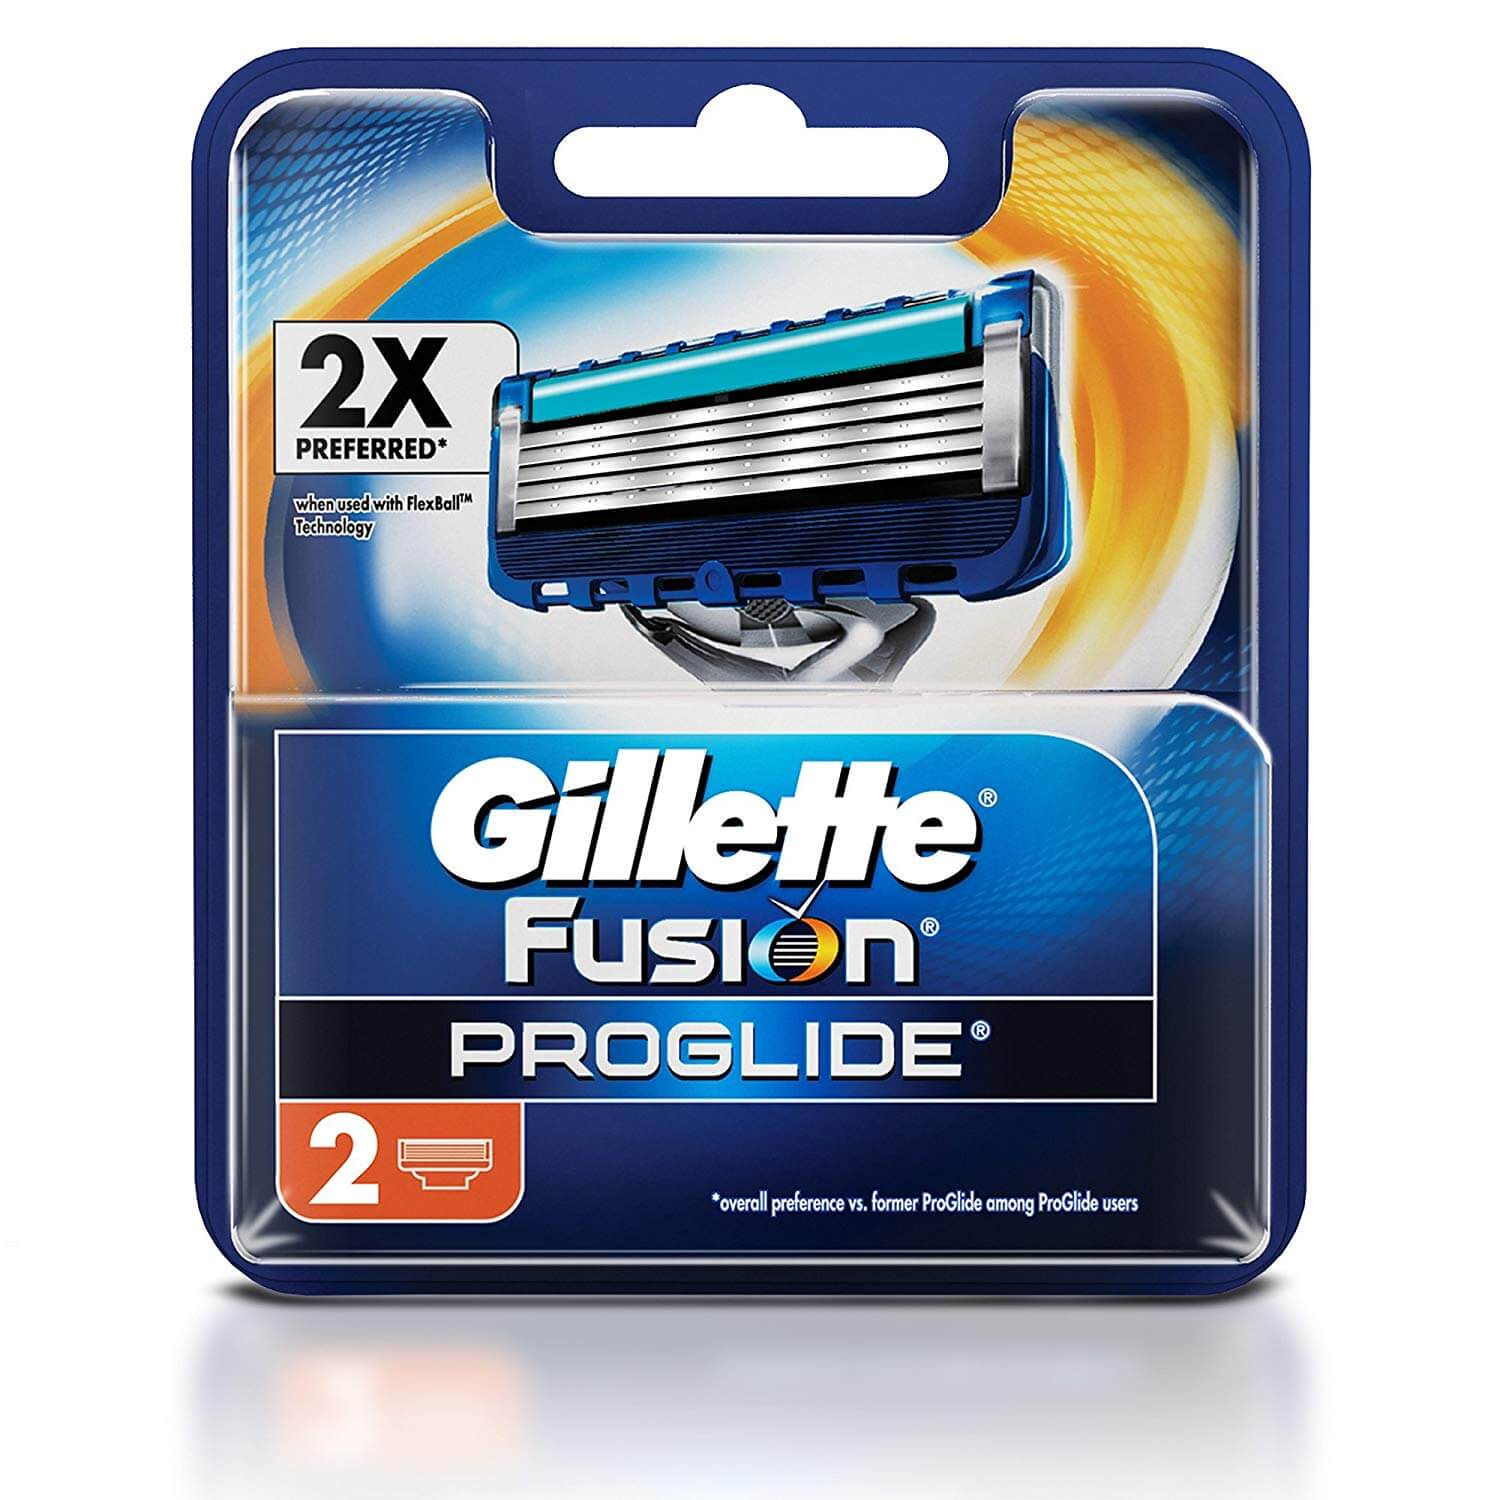 Gillette Fusion Proglide Flex Ball Manual Shaving Razor Blades - 2 Cartridges